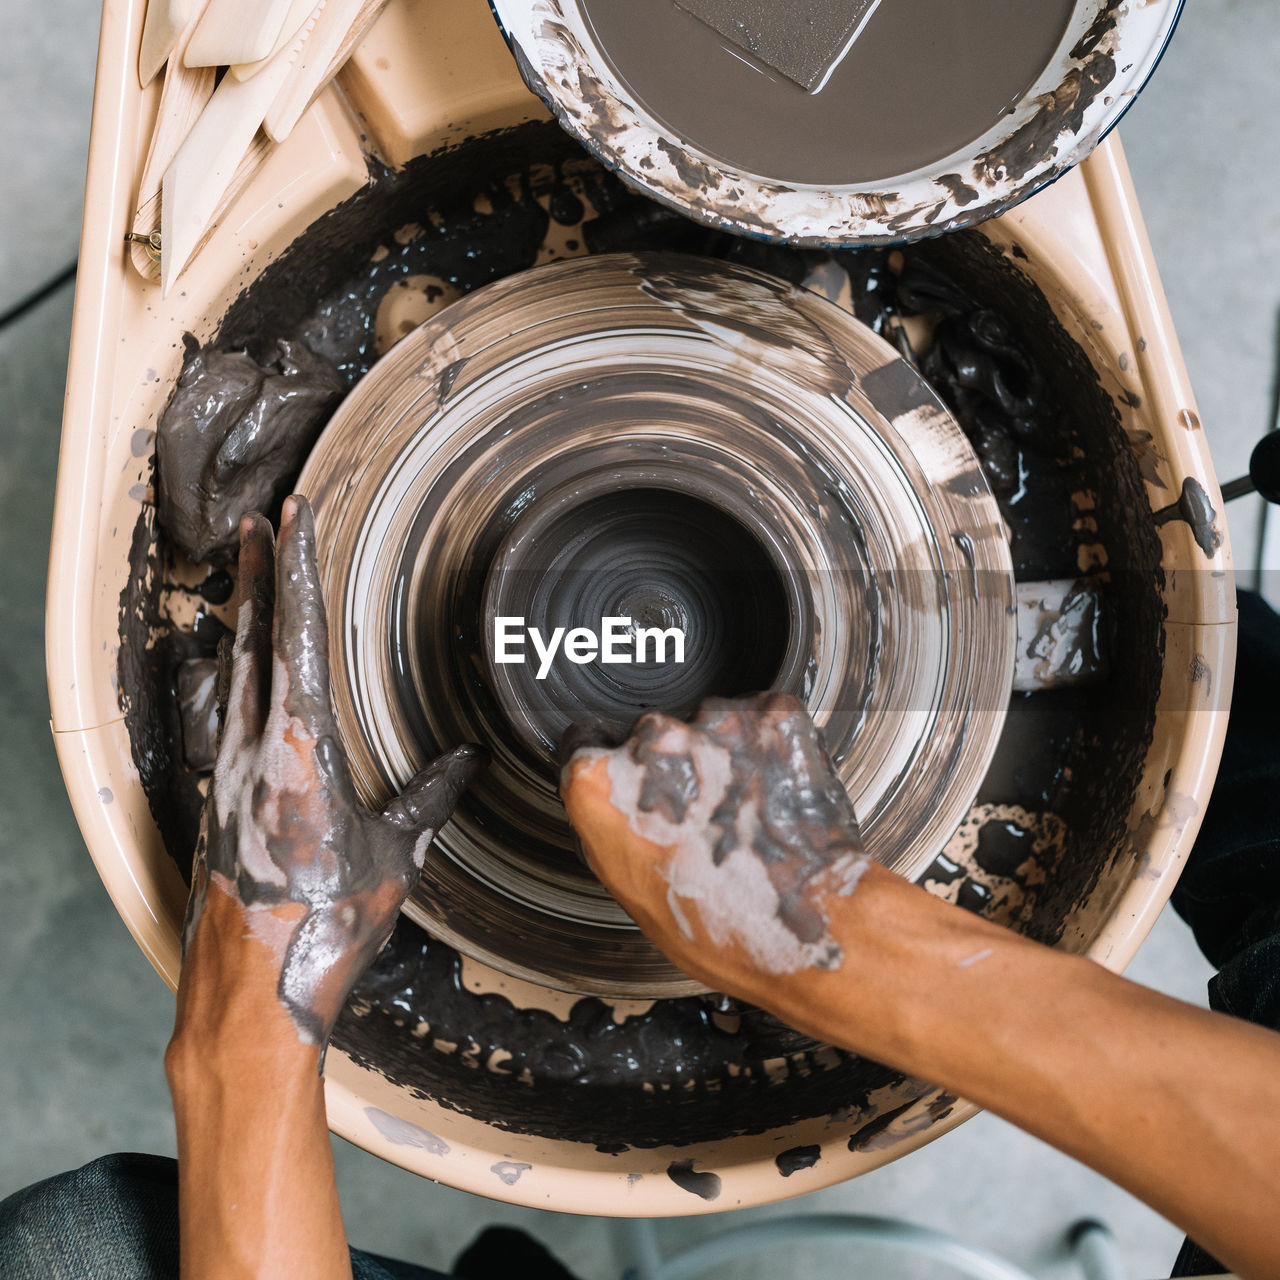 CLOSE-UP OF WOMAN HAND IN WATER TANK